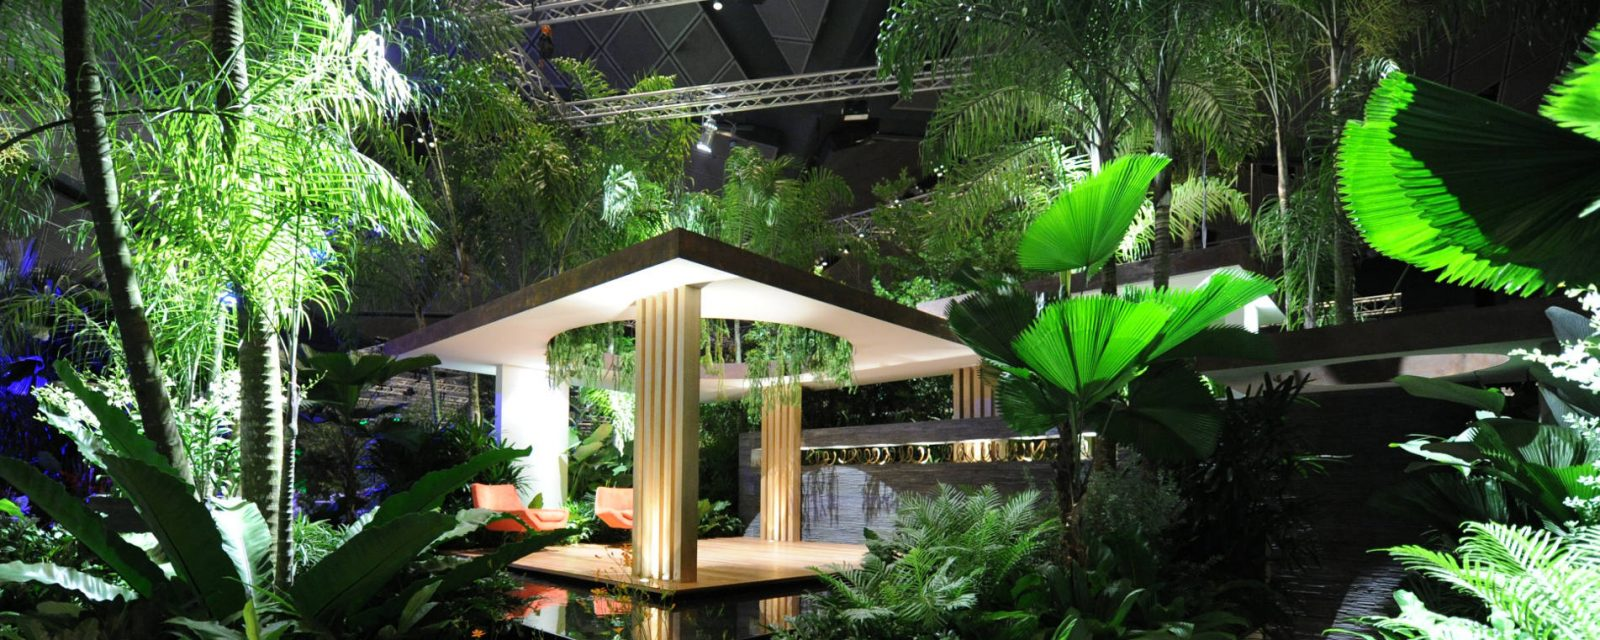 Gold Award and Horticultural Excellence Award Winning garden at Singapore Garden Festival 2012